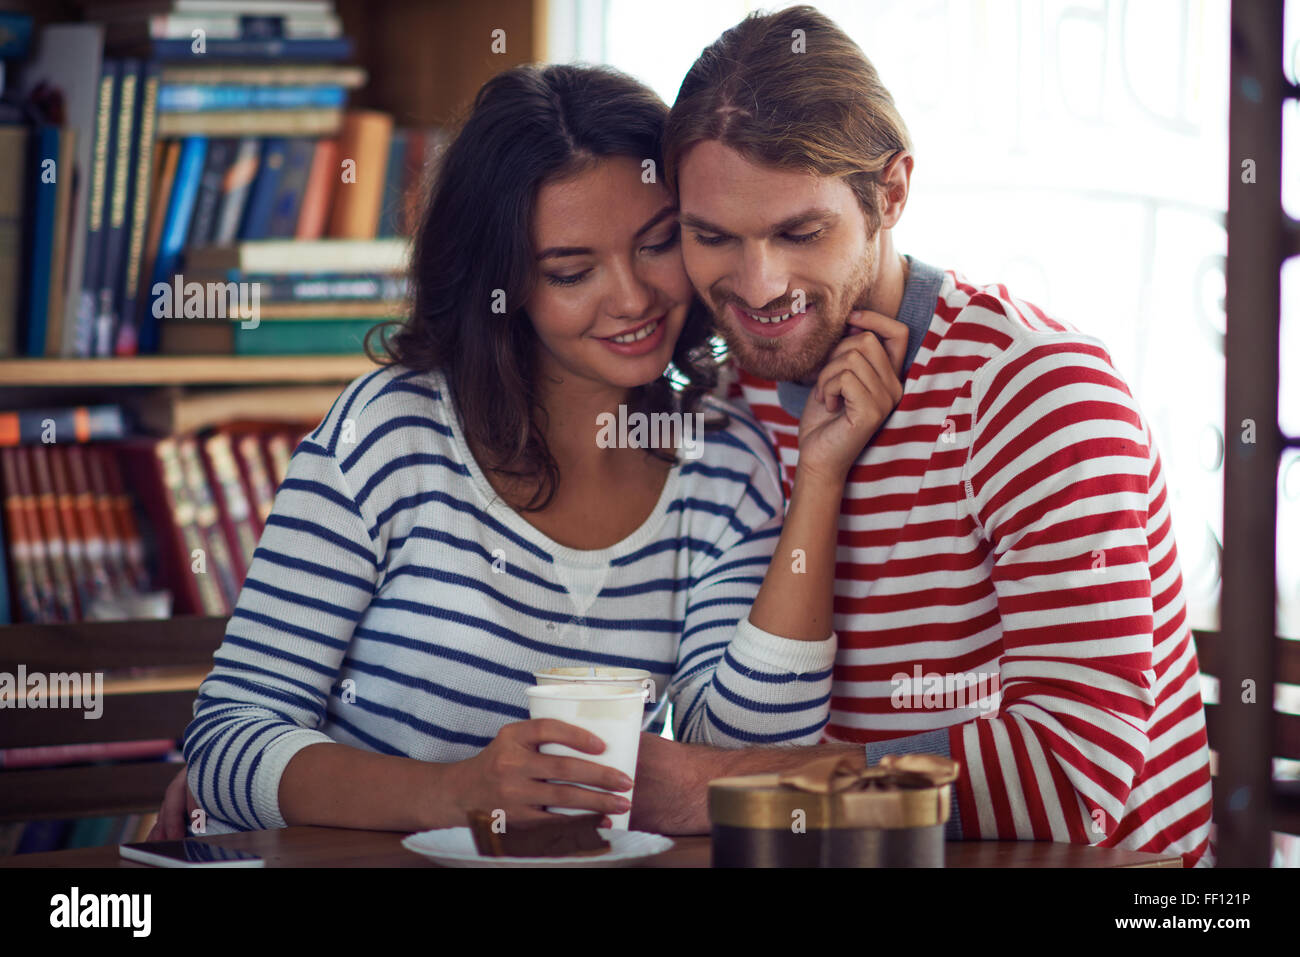 Amorous valentines spending time in cafe - Stock Image